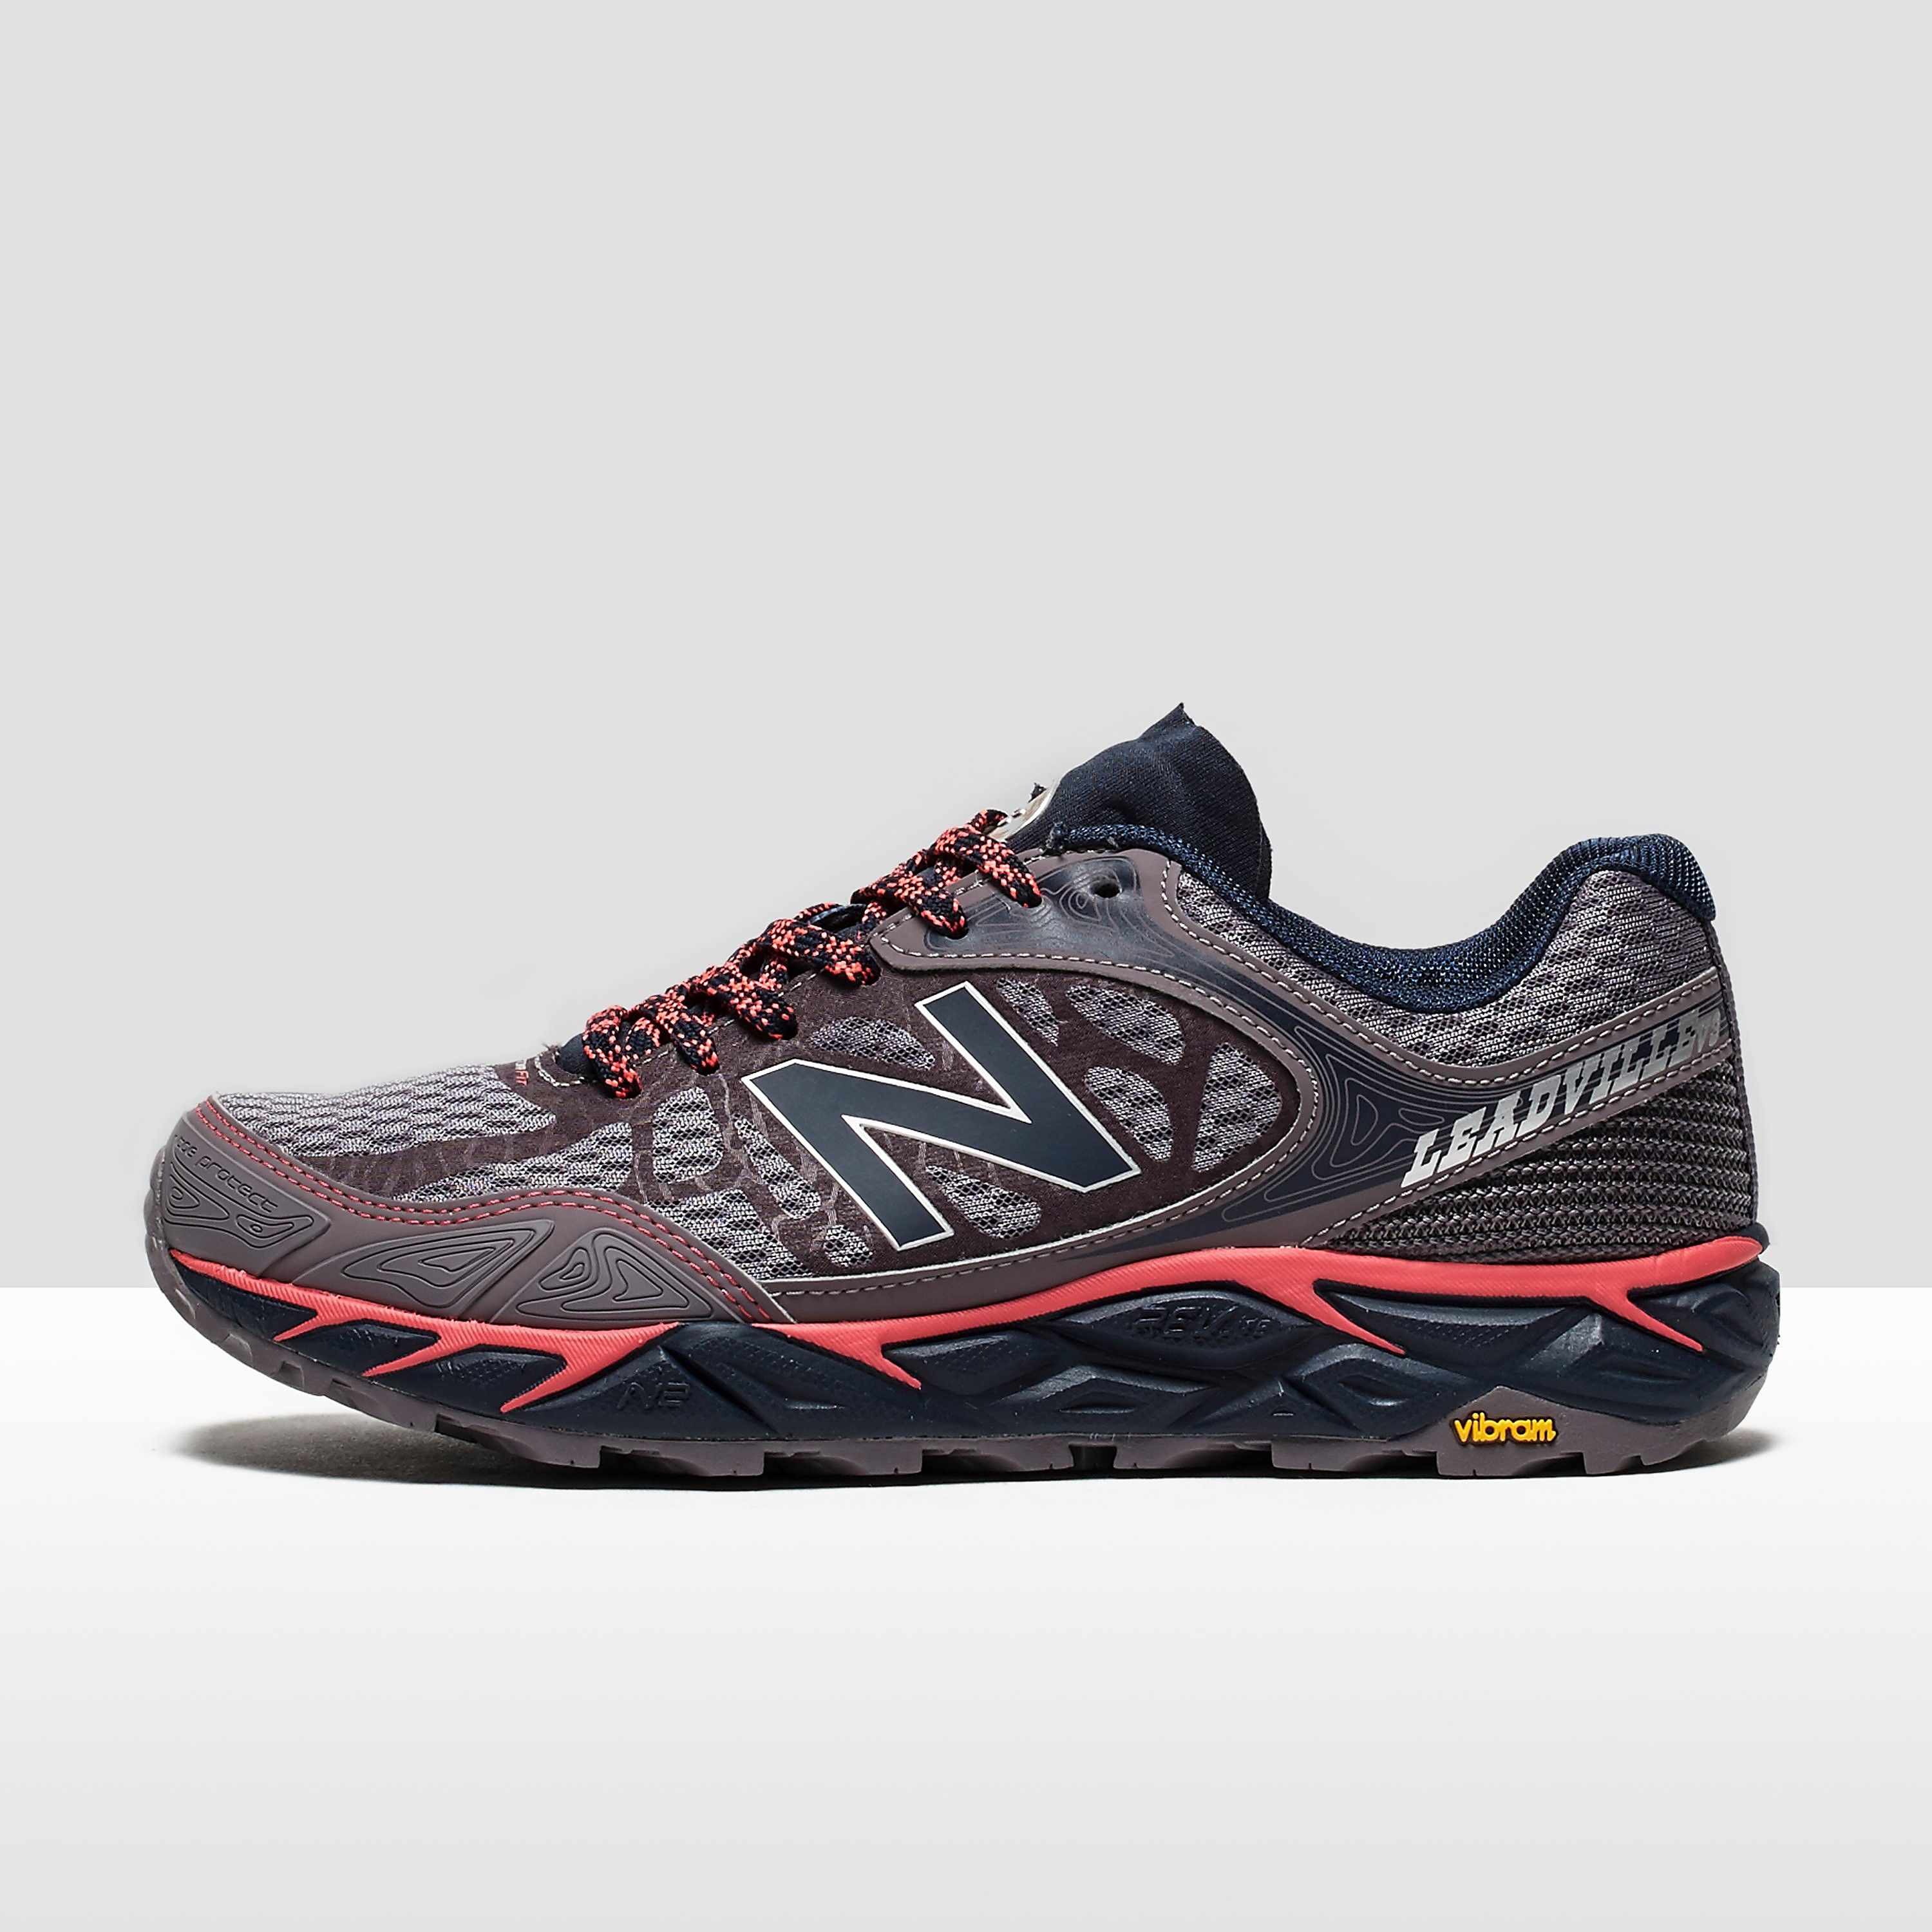 New Balance Leadville v3 women's running shoe